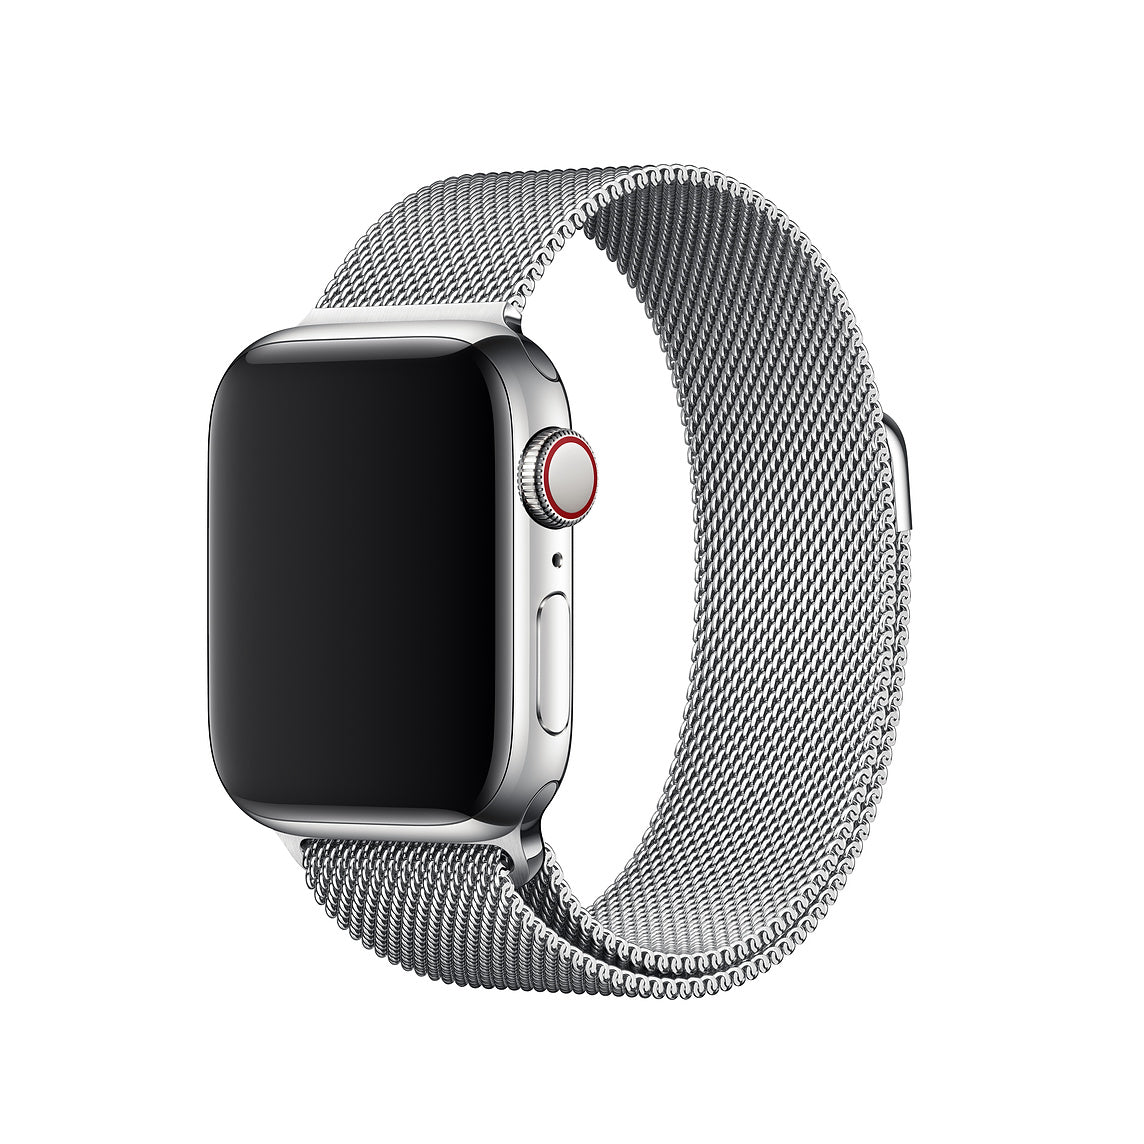 Stainless Steel Mesh Milanese Strap with Magnetic Closure For Apple Watch 1,2,3,4 & Cellular (44 /42 /40 /38 MM)